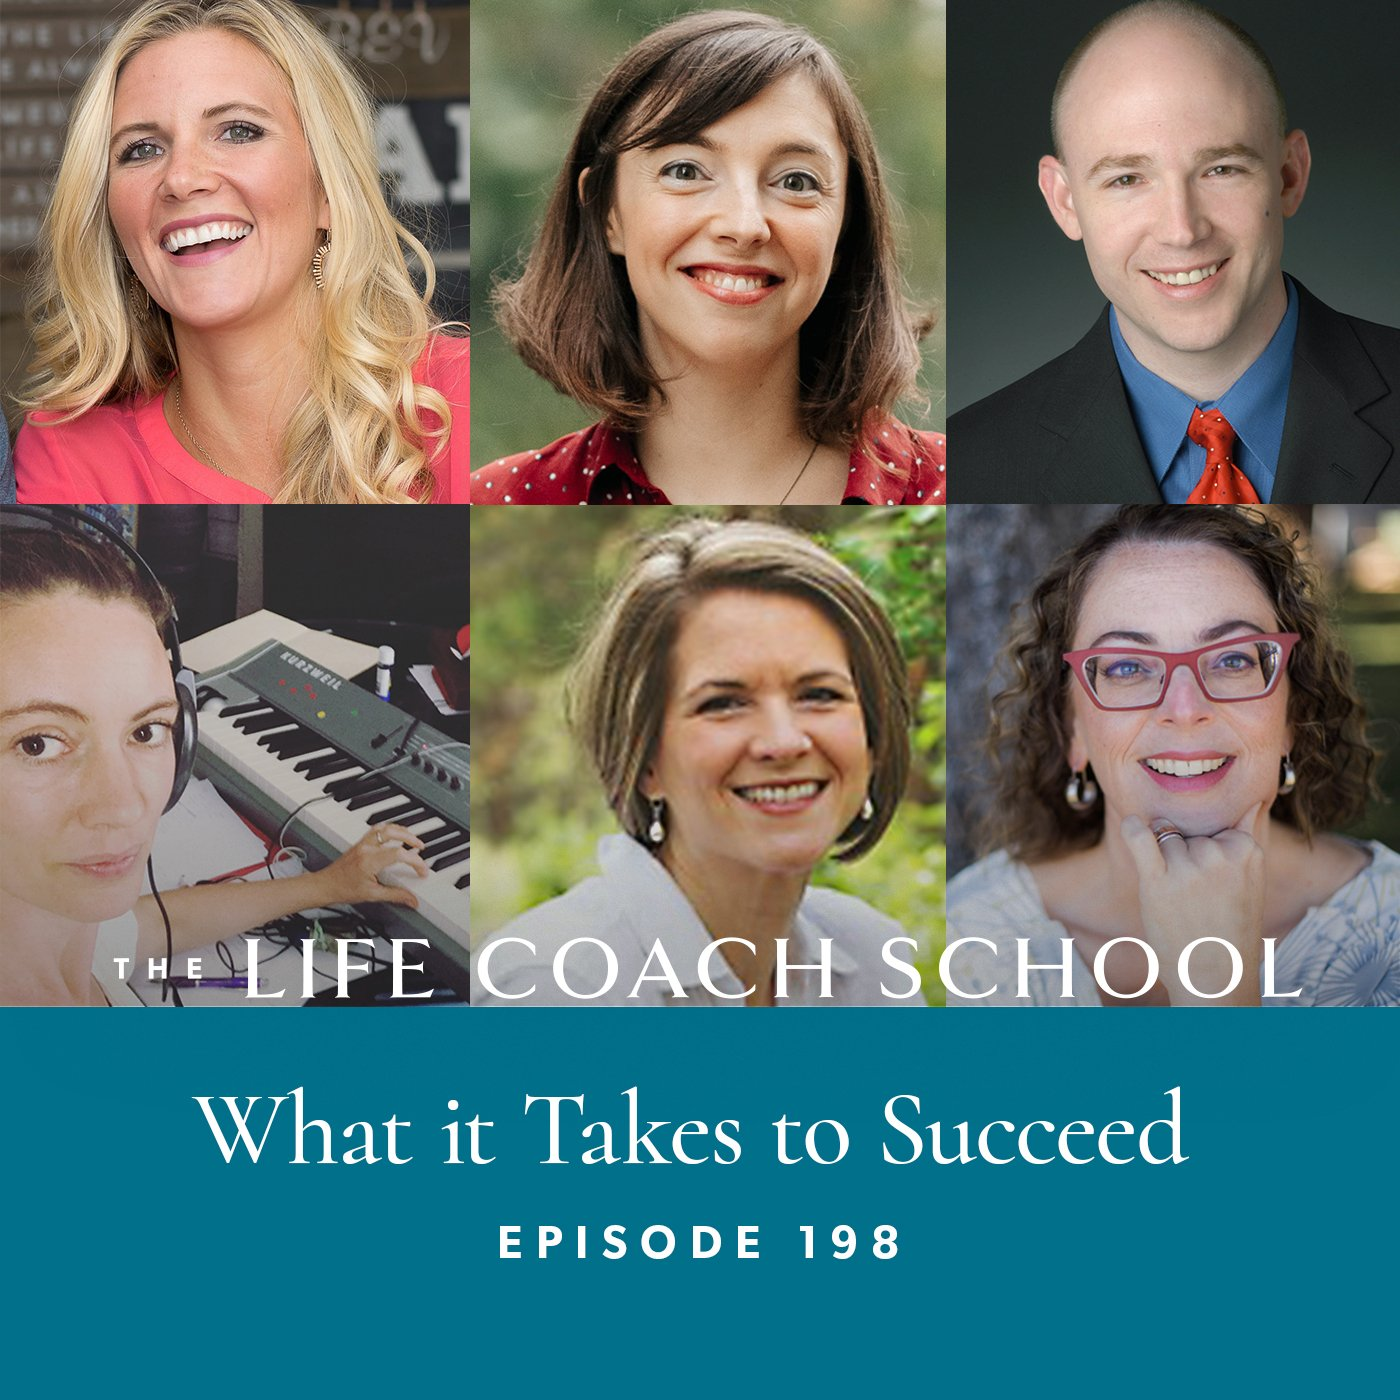 The Life Coach School Podcast with Brooke Castillo | Episode 198 | What it Takes to Succeed (Success Stories from Scholars)